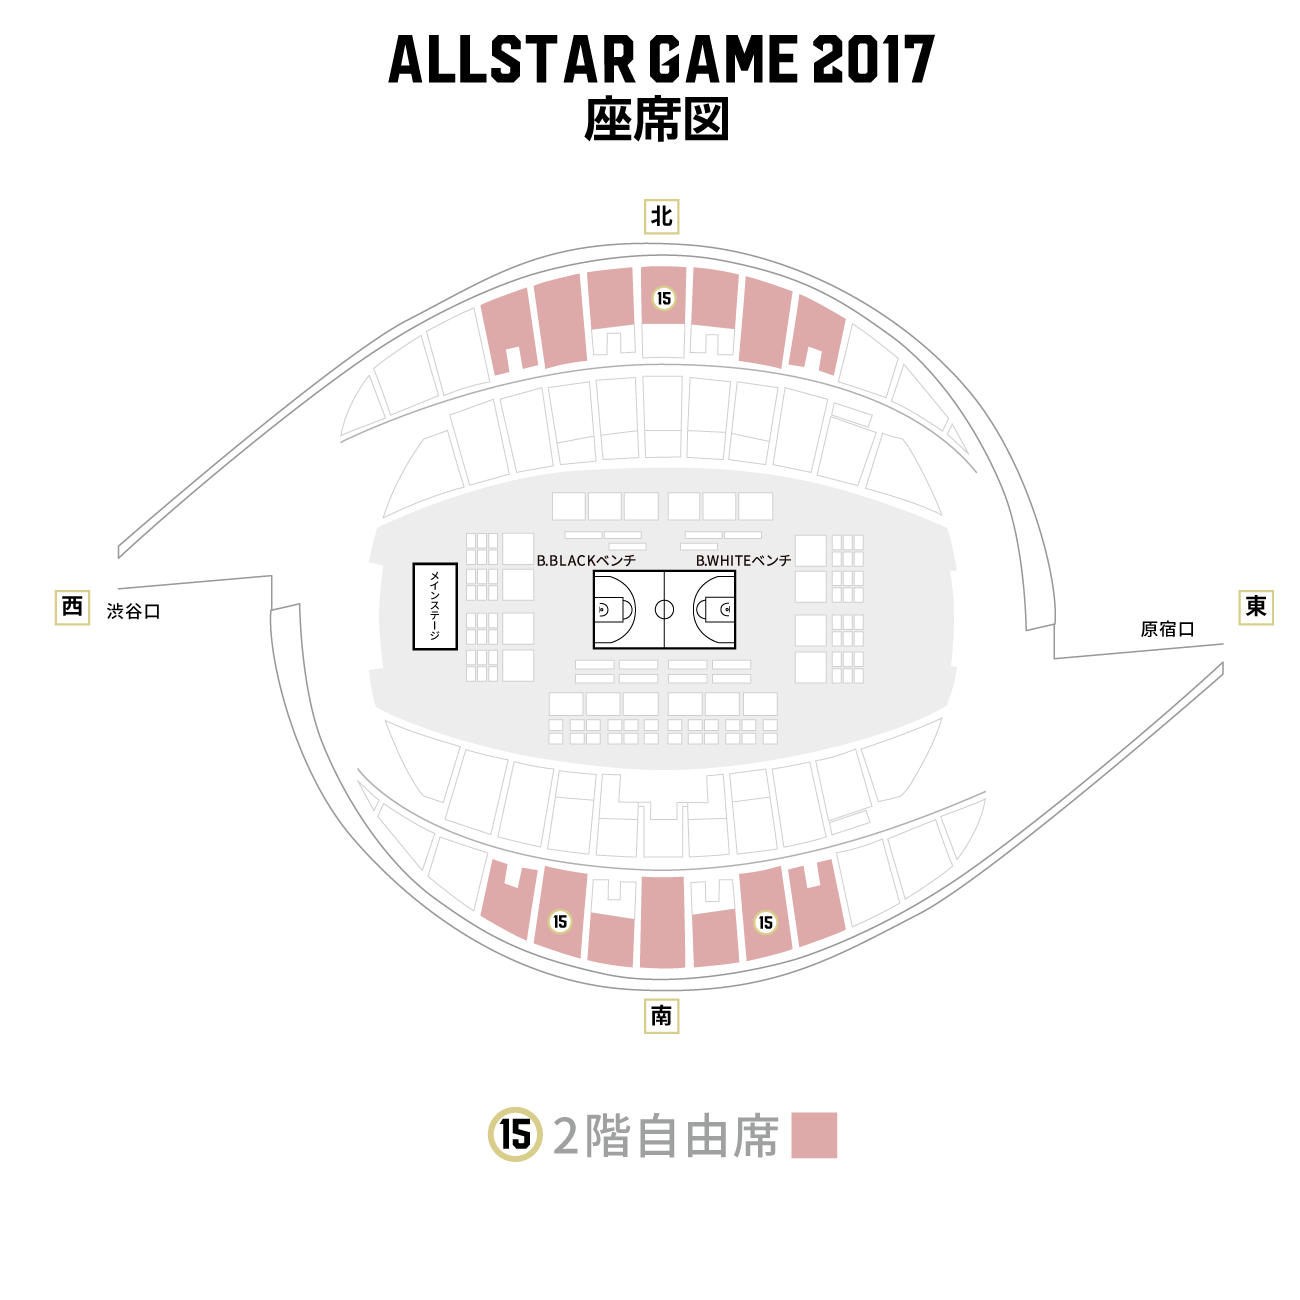 seatview_seat_15.png